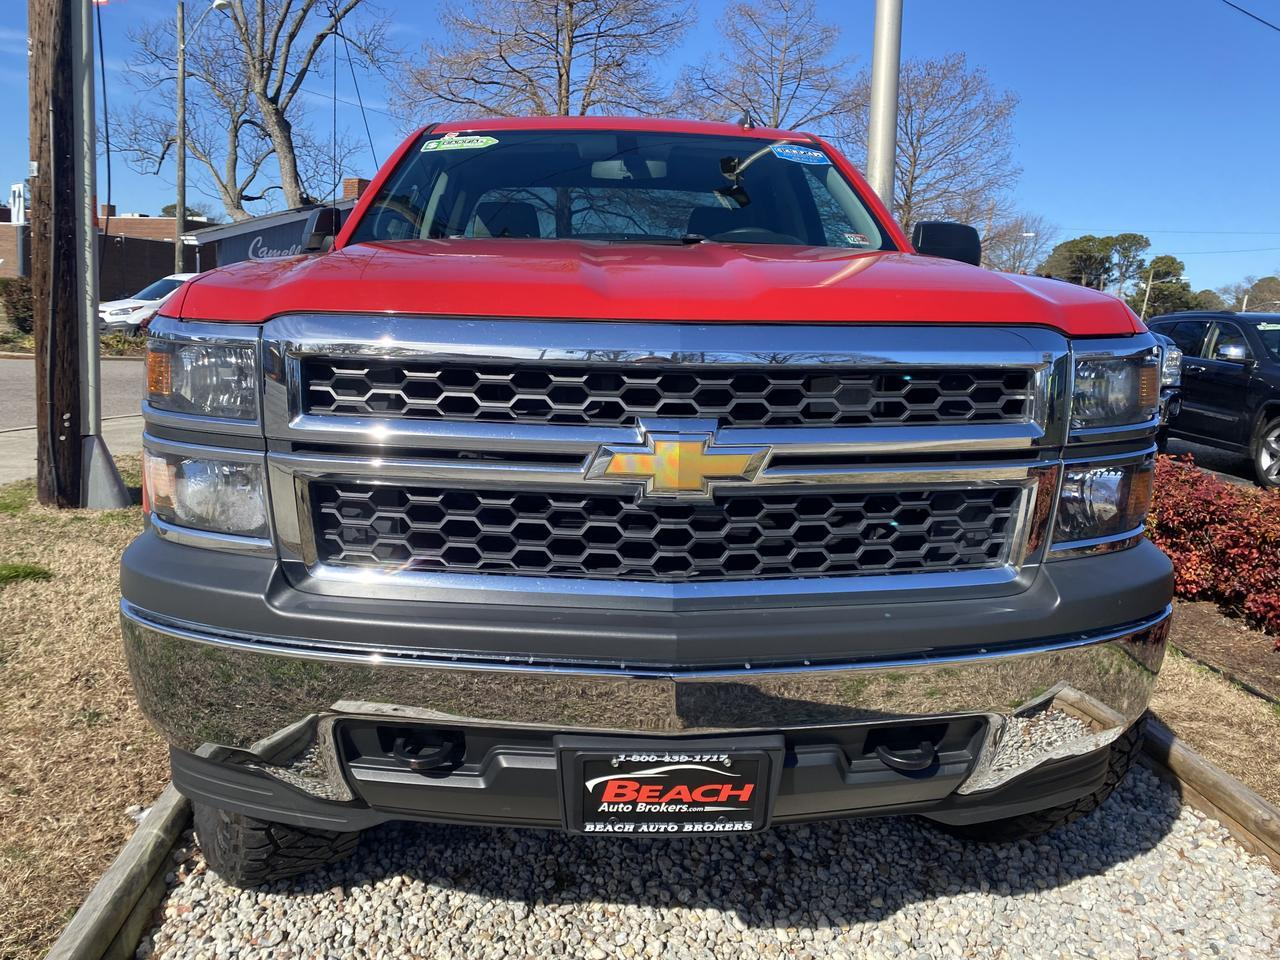 2014 CHEVROLET SILVERADO 1500 WORK TRUCK DOUBLE CAB 4X4, WARRANTY, LIFTED, CRUISE CONTROL, A/C, TOWING PKG! Norfolk VA